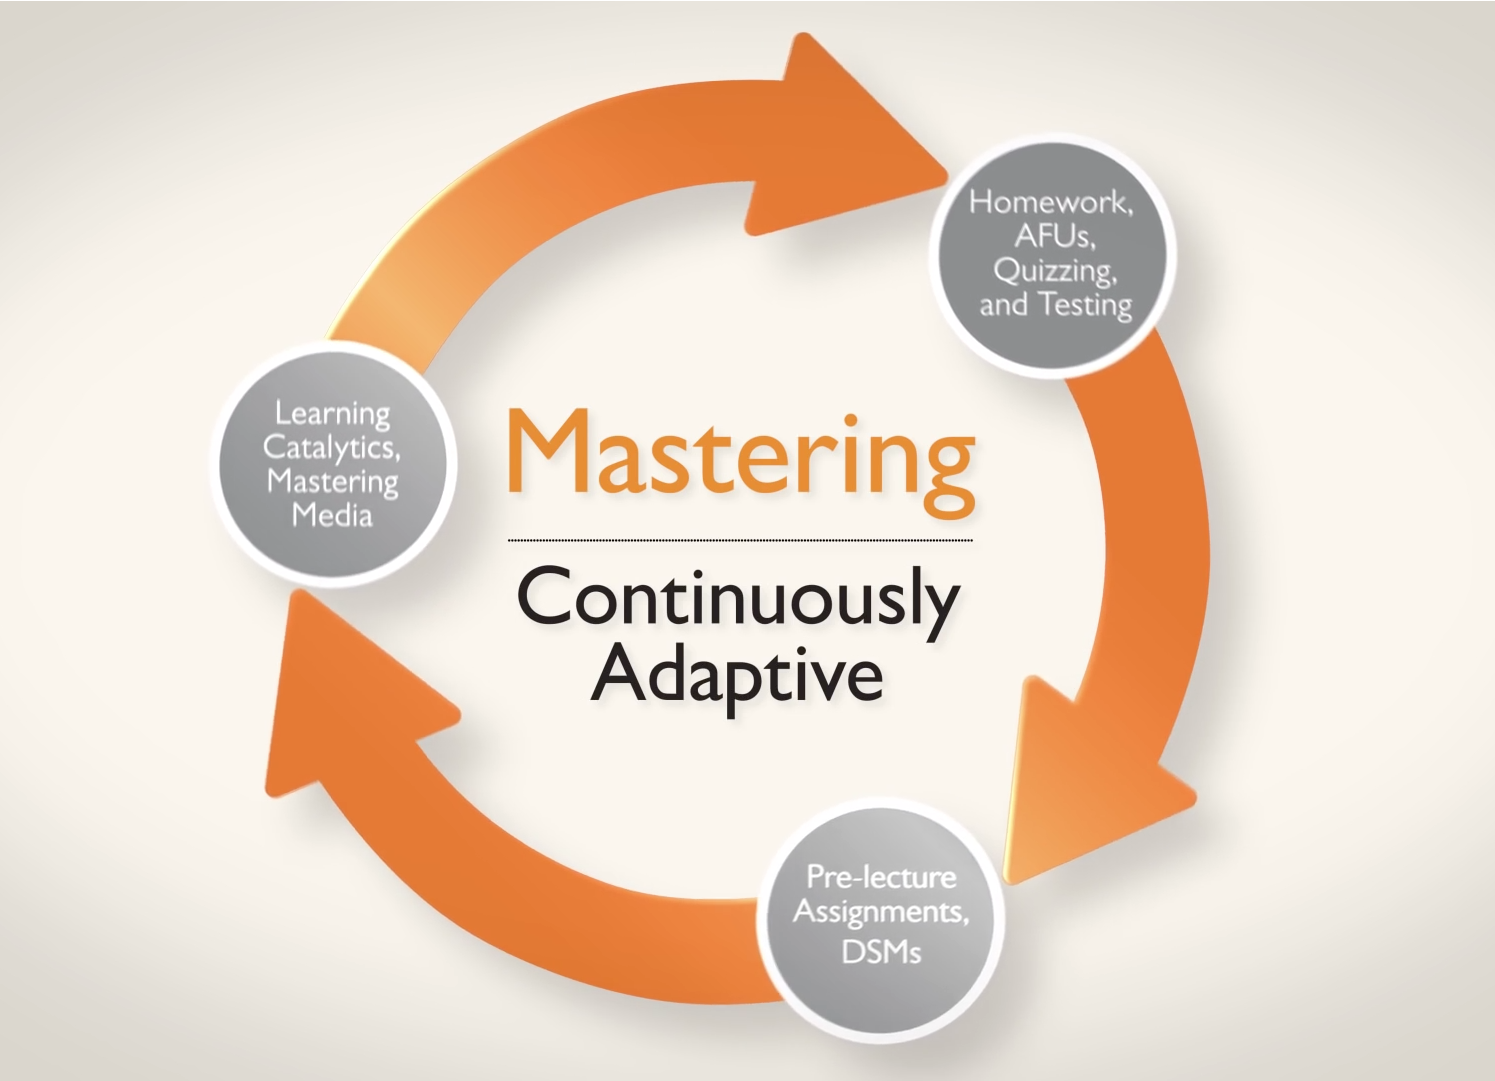 Mastering - Continuously Adaptive Cycle